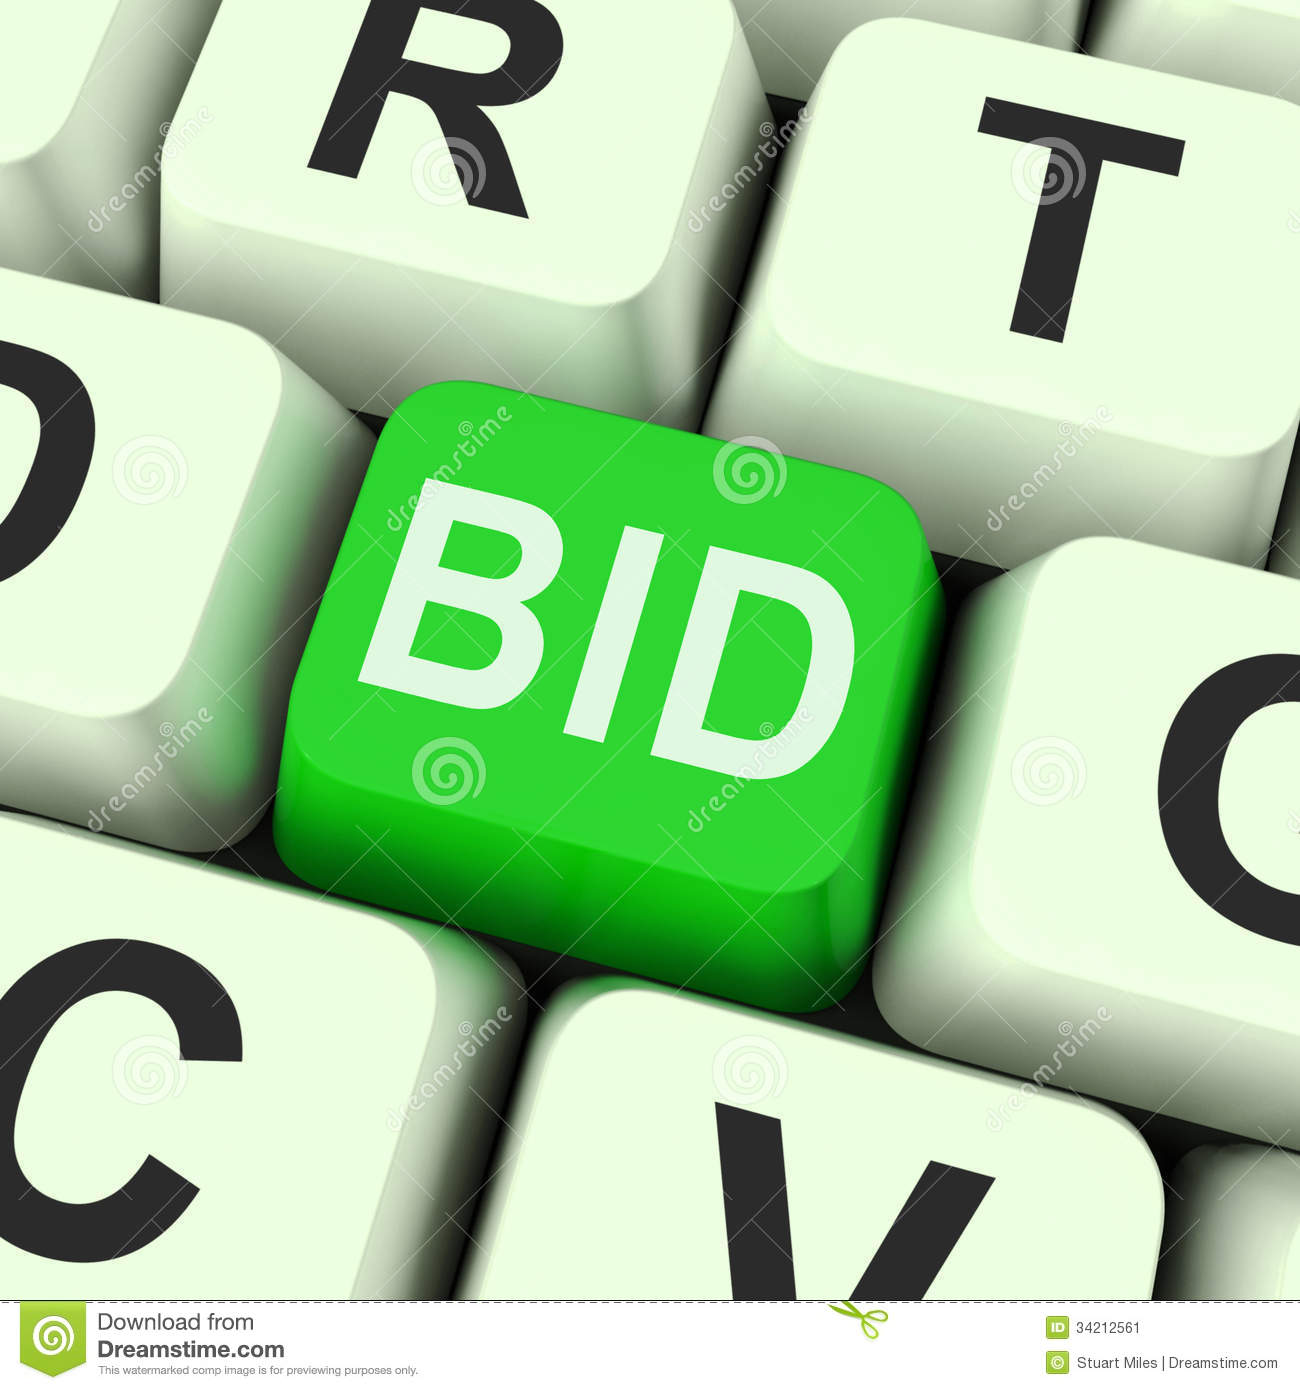 Starting an Online Auction Business